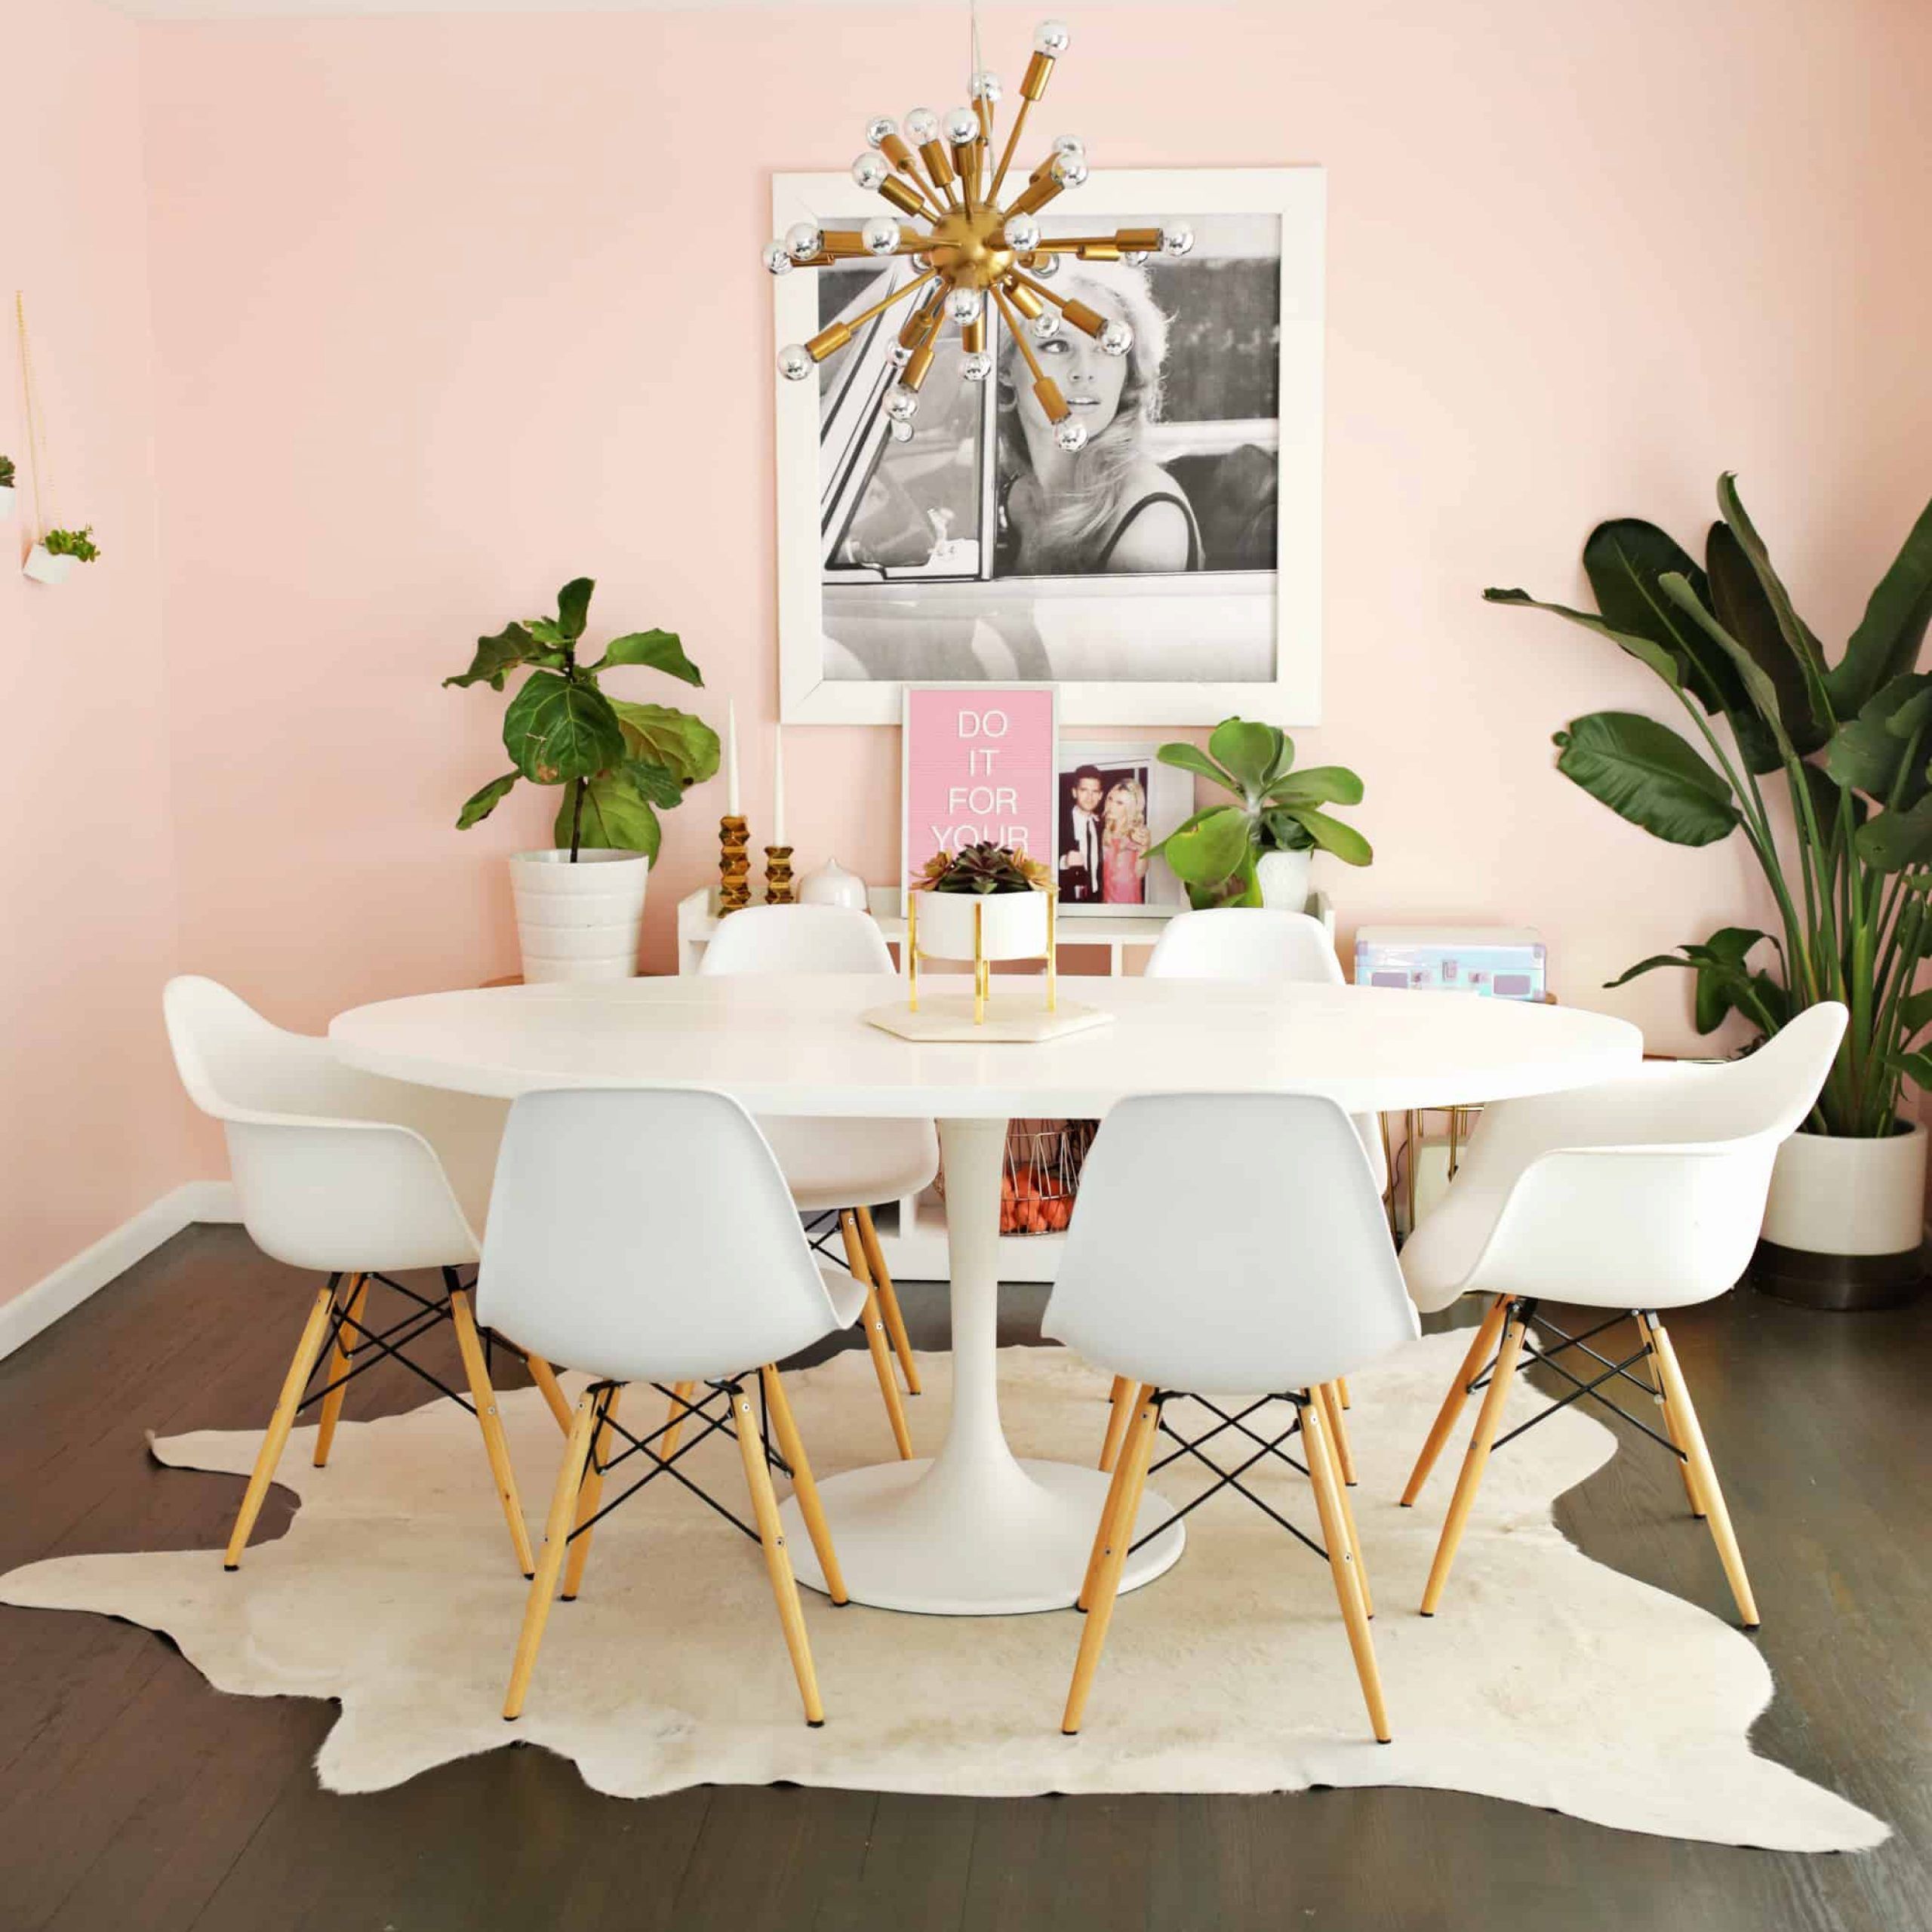 20 Tropical Dining Room Ideas For 2018: 25+ Chapman Marble Oval Dining Tables